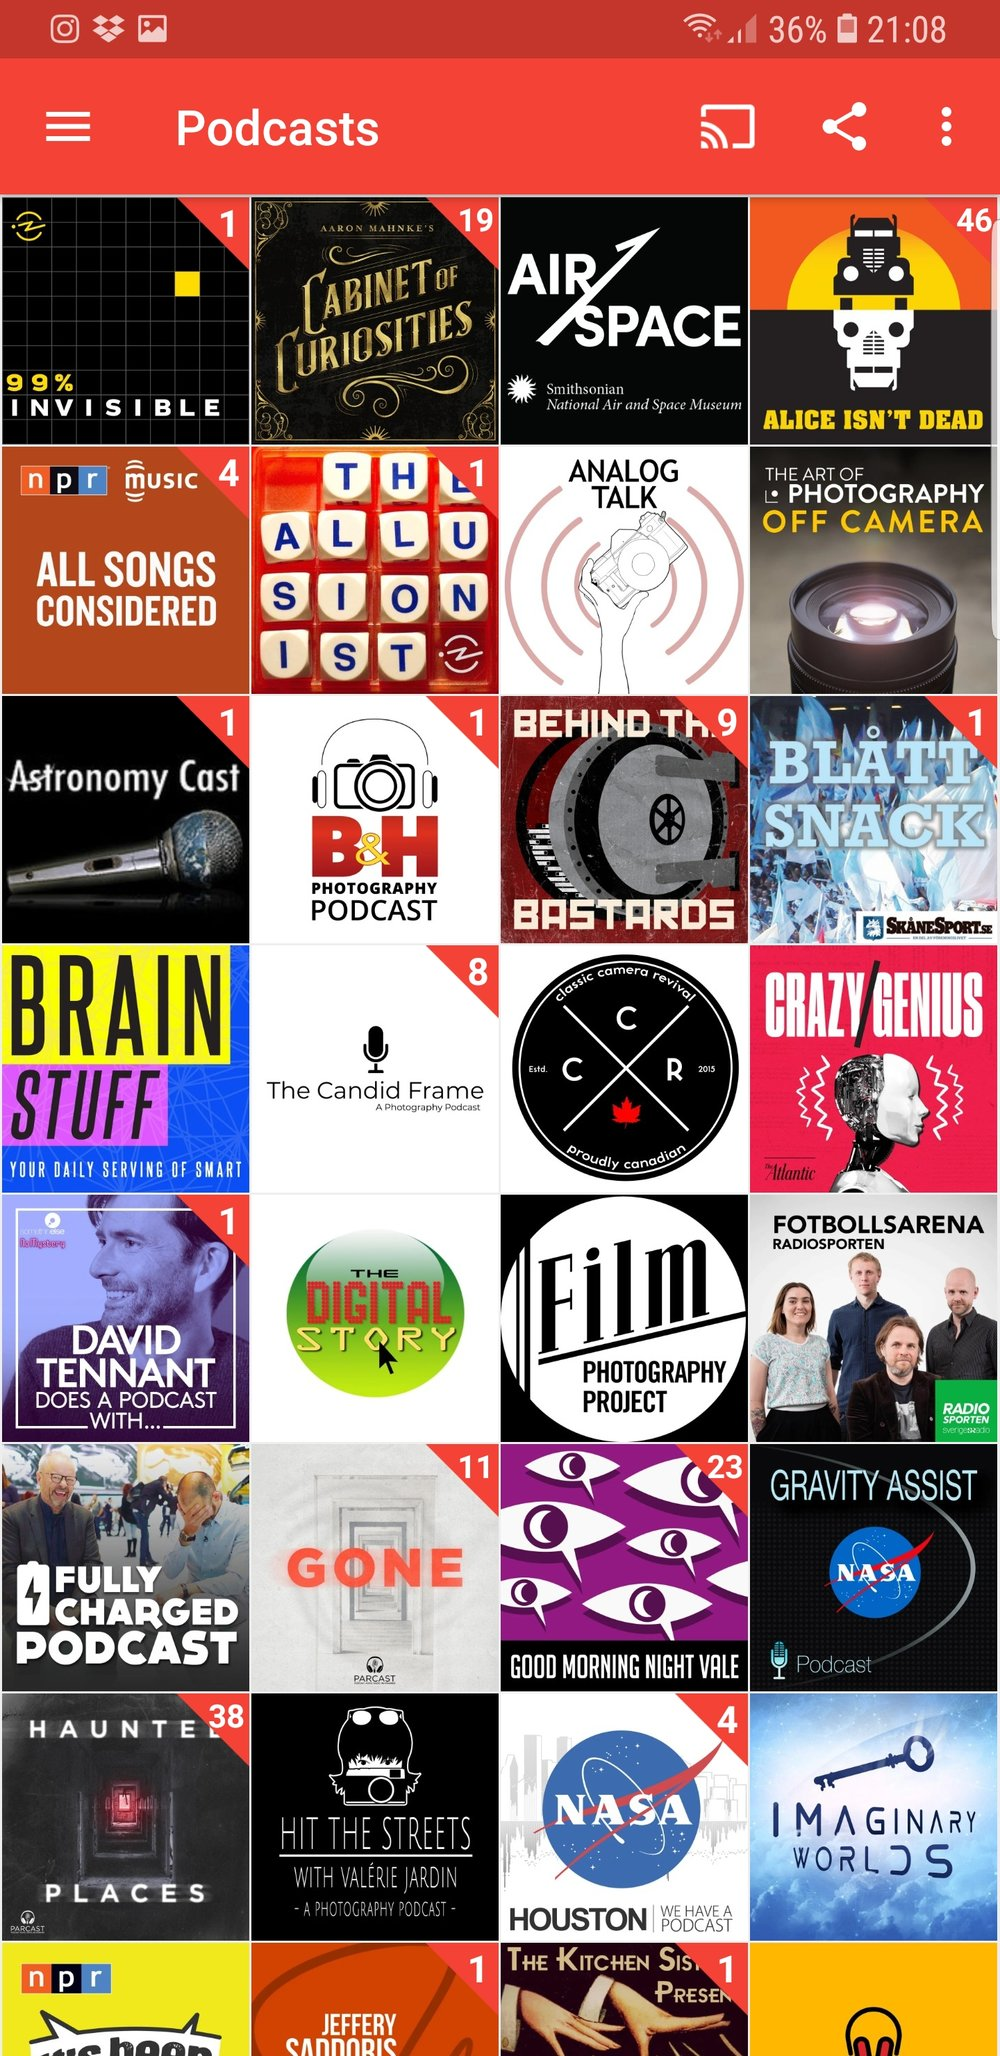 Screenshot from my PocketCasts app